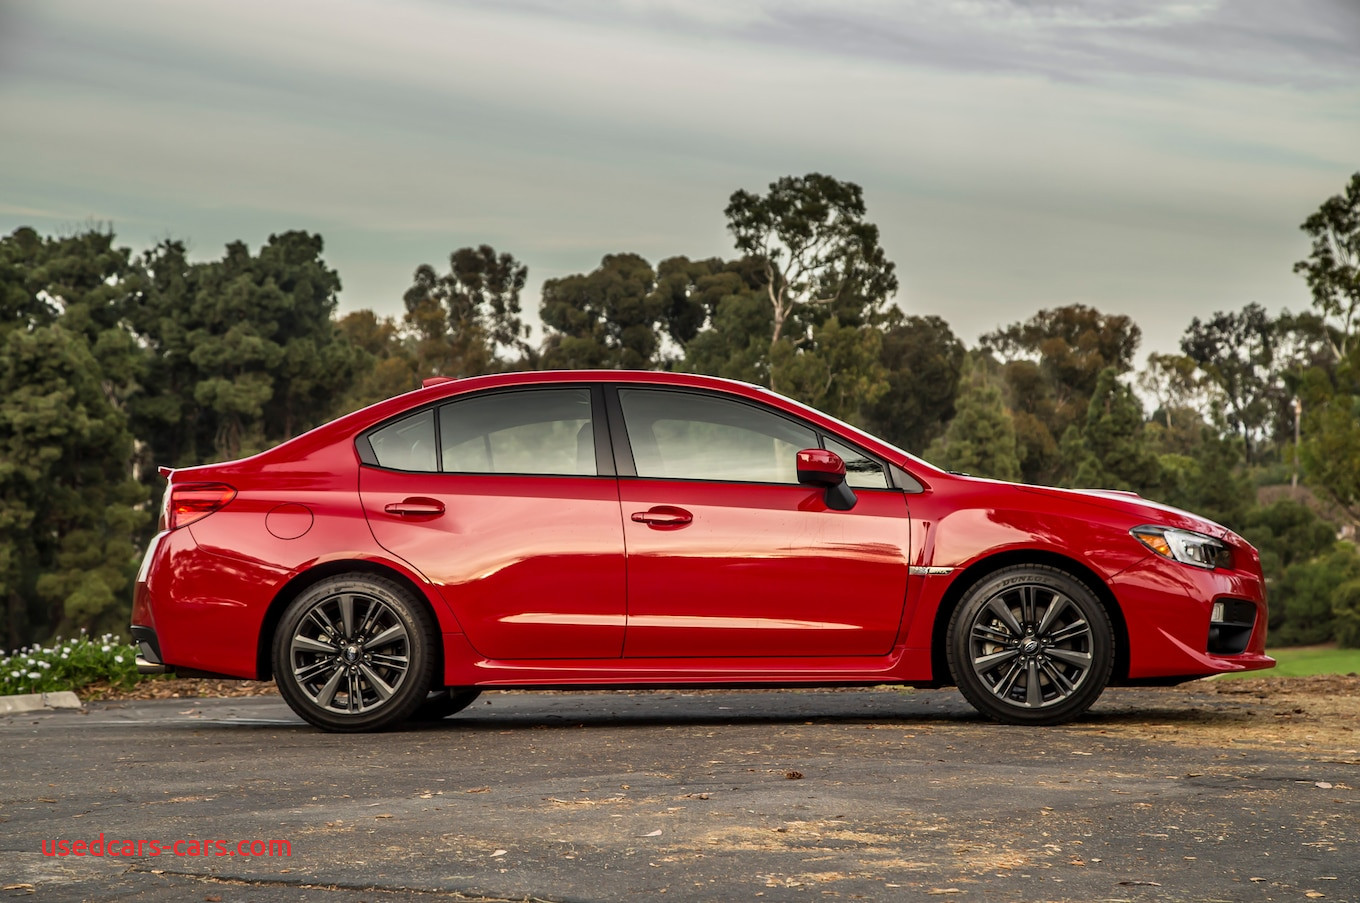 Wrx Cvt New 2015 Subaru Wrx Cvt First Test Motor Trend